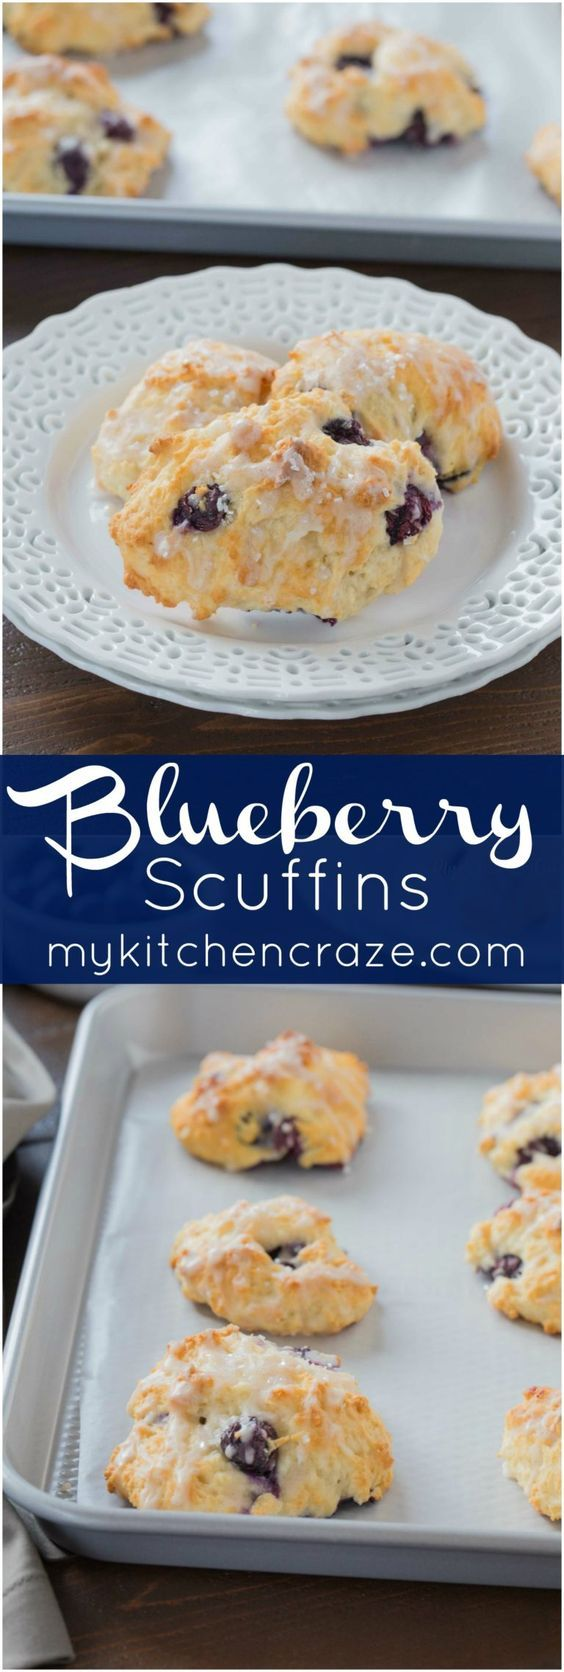 Blueberry Scuffins ~ mykitchencraze .com ~ They're not scones or muffins, but Scuffins. Enjoy these moist and delicious Blueberry Scuffins with a cup of coffee and/or tea.